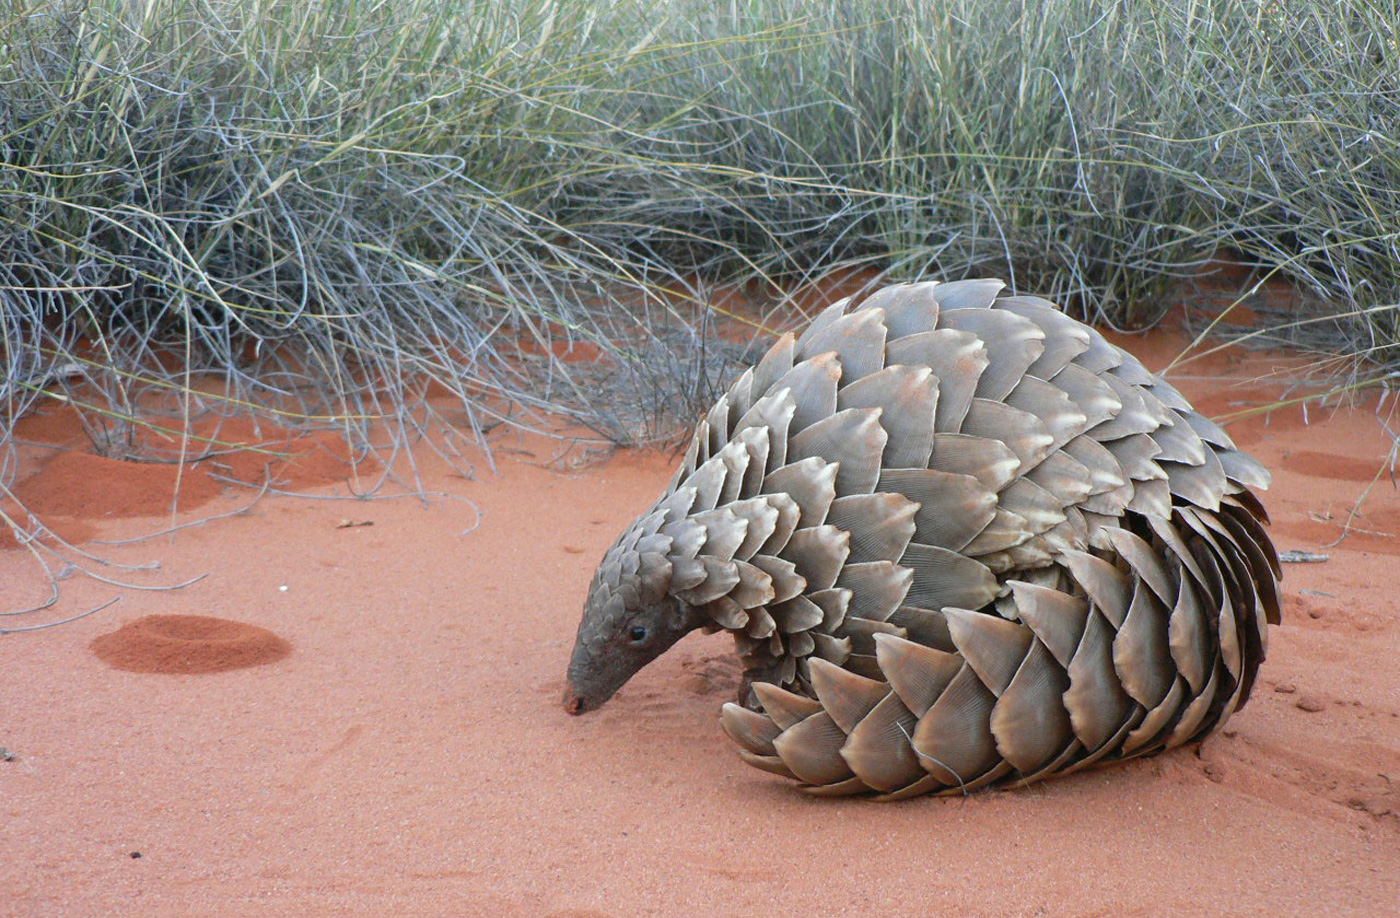 Bien connu The pangolin is the world's most trafficked animal. It's currently  WQ61